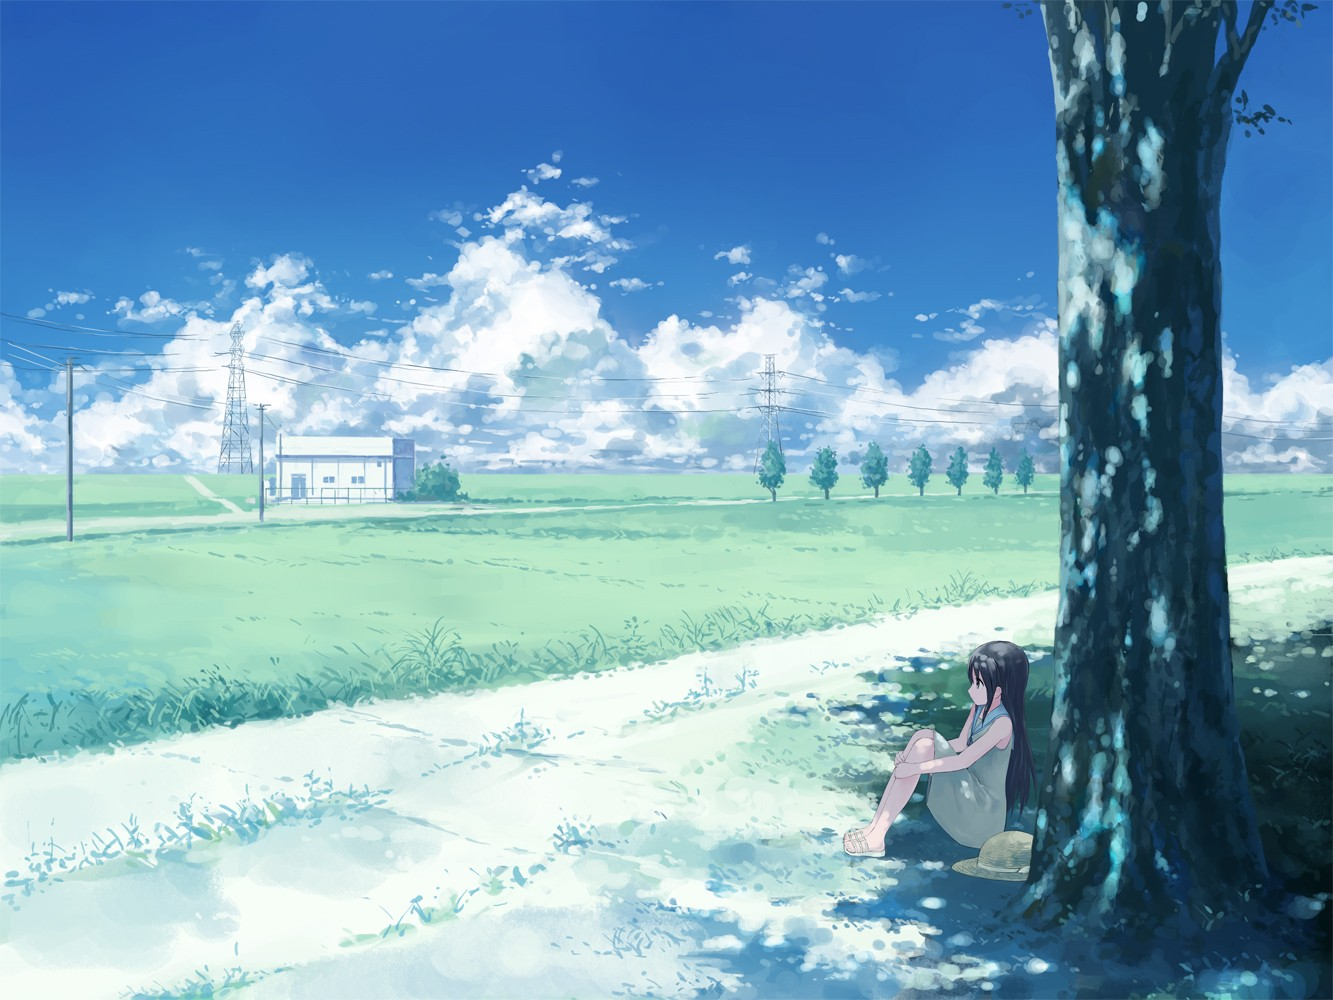 Anime Scenery Wallpaper Hd Background 9 HD Wallpapers | Anime